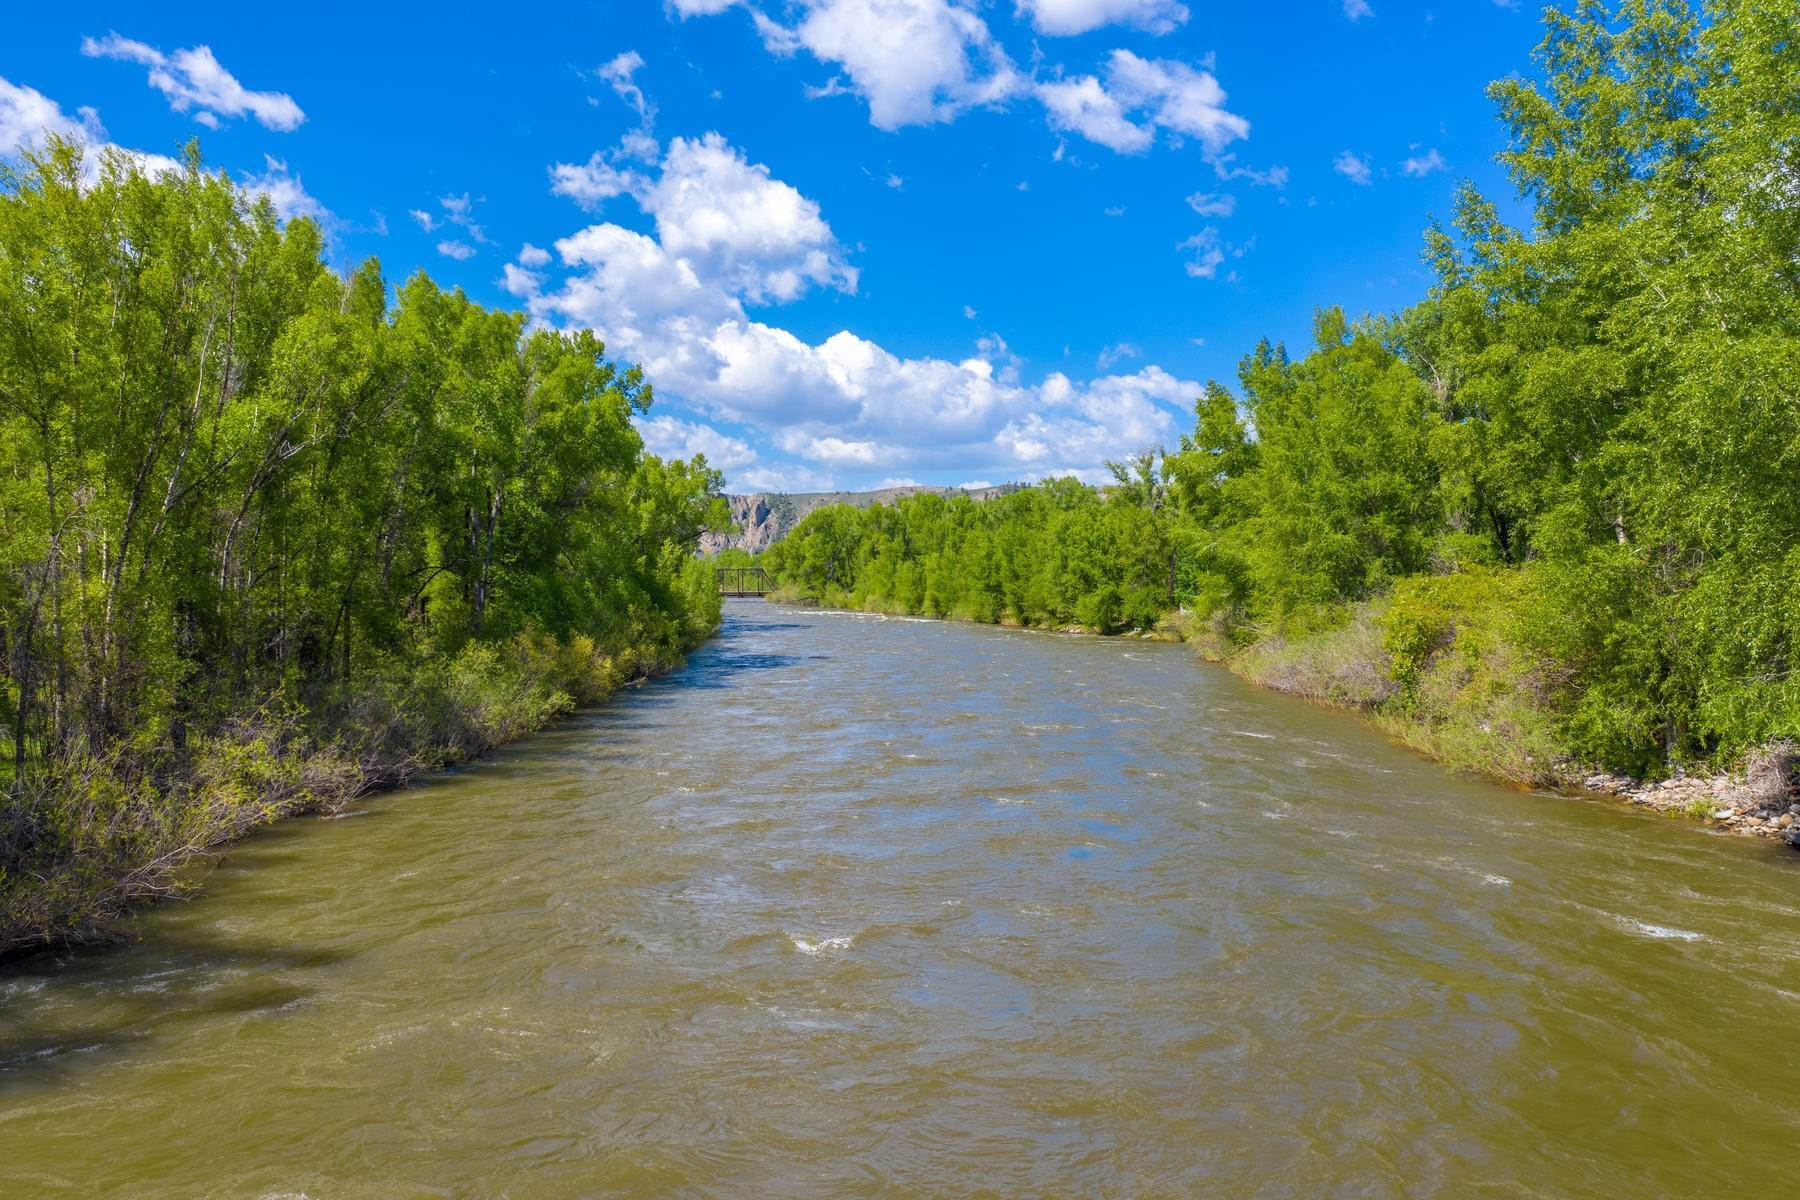 Land for Sale at Gunnison River Property 455 Riverwalk Drive Gunnison, Colorado 81230 United States